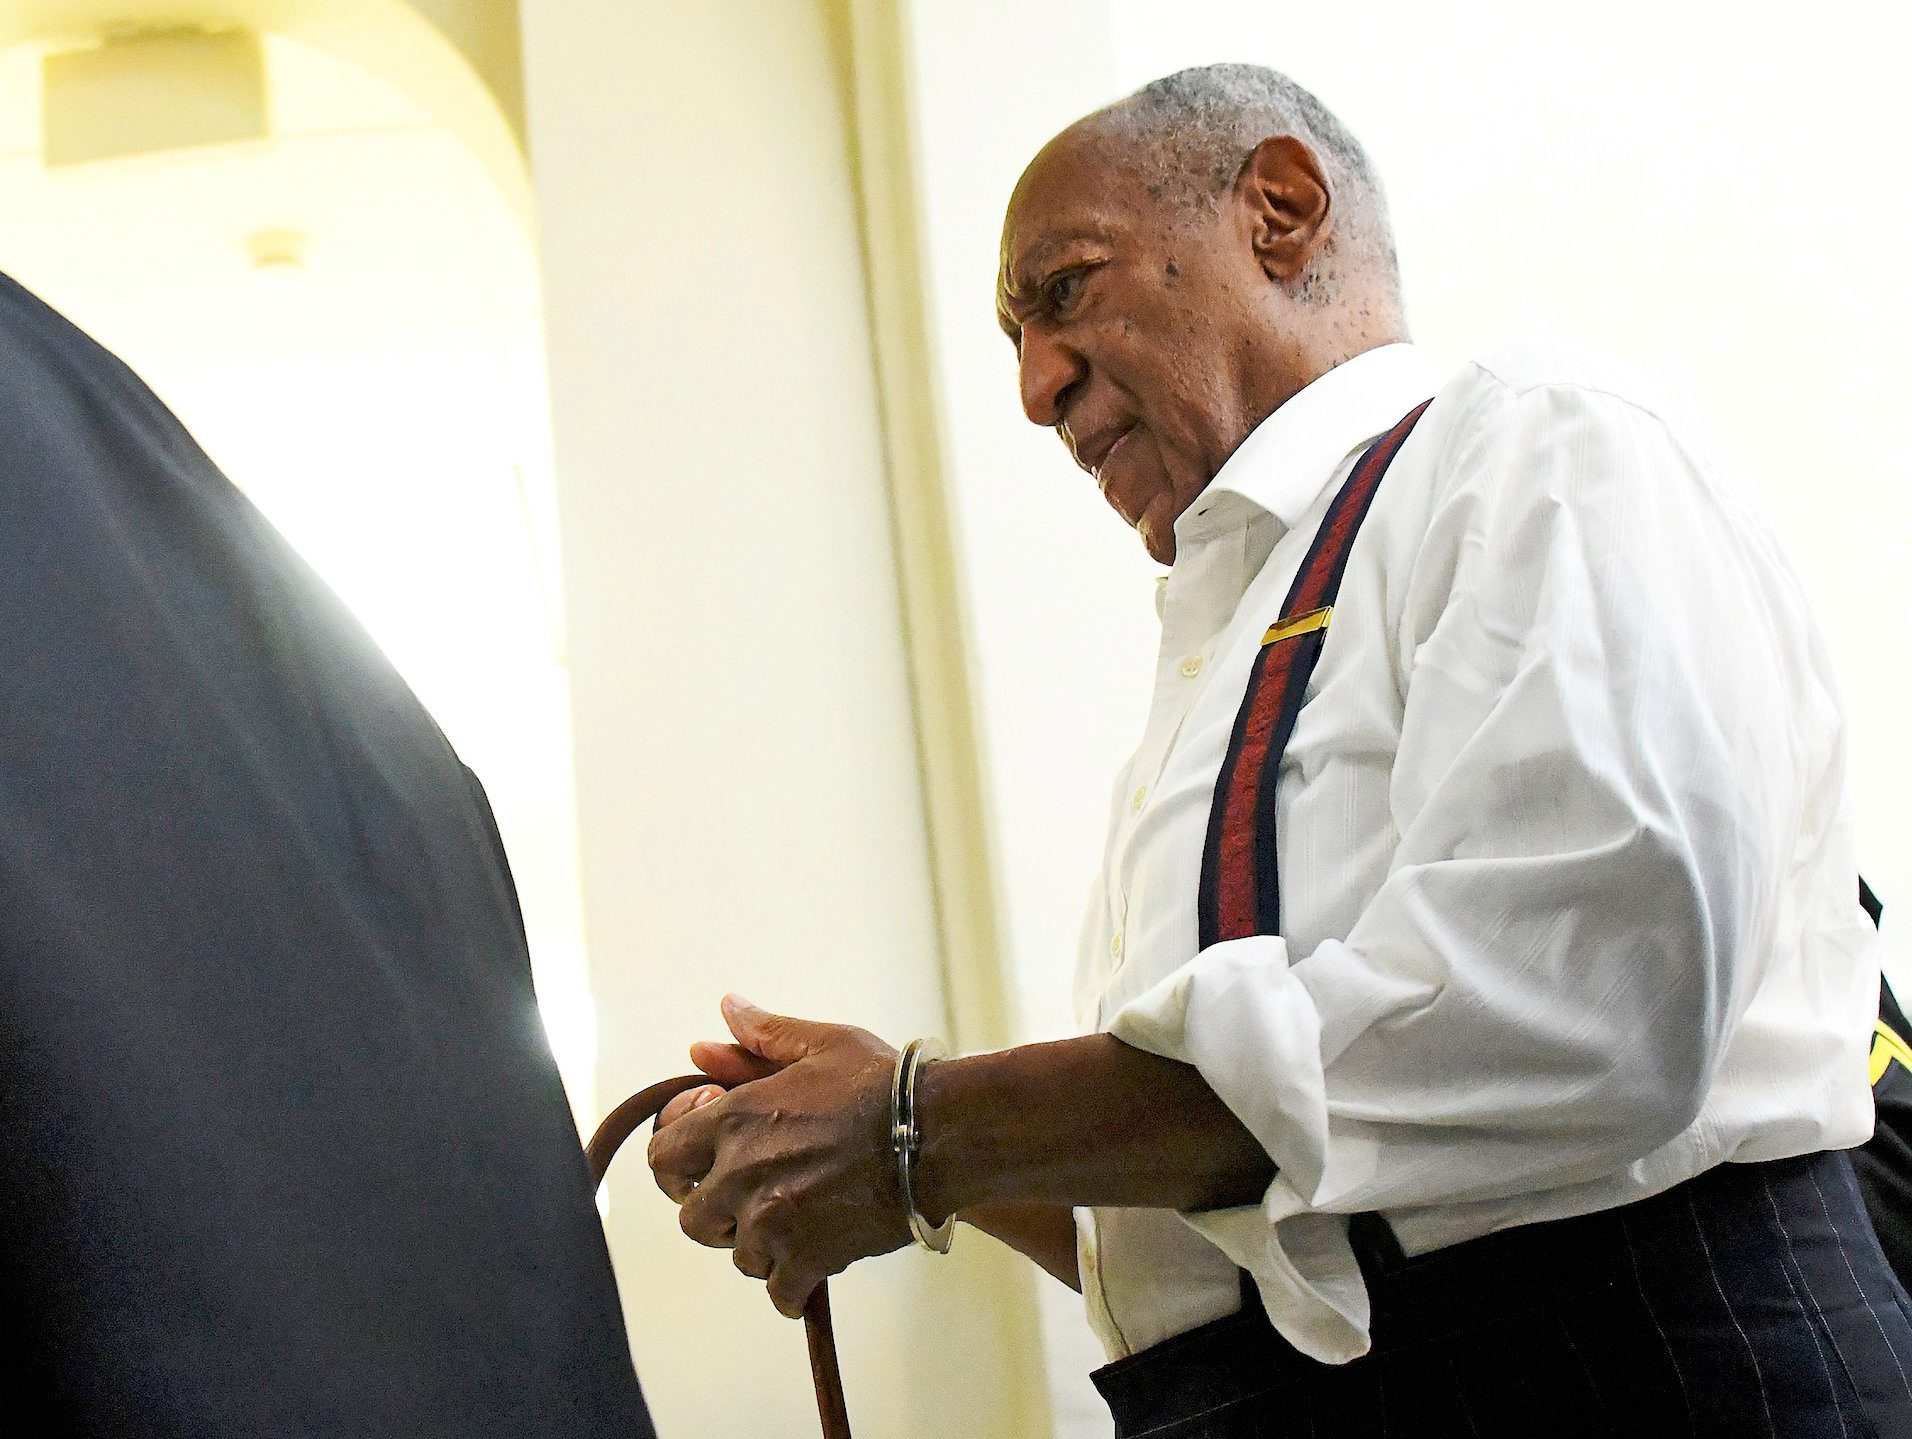 2018-09-25T190910Z_802815783_RC1EB08B0600_RTRMADP_3_PEOPLE-COSBY